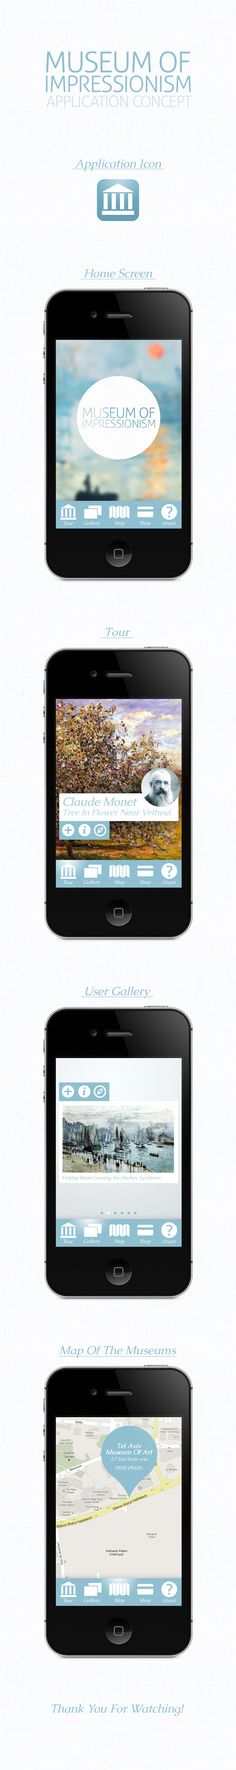 museum #digitaldesign #design #app